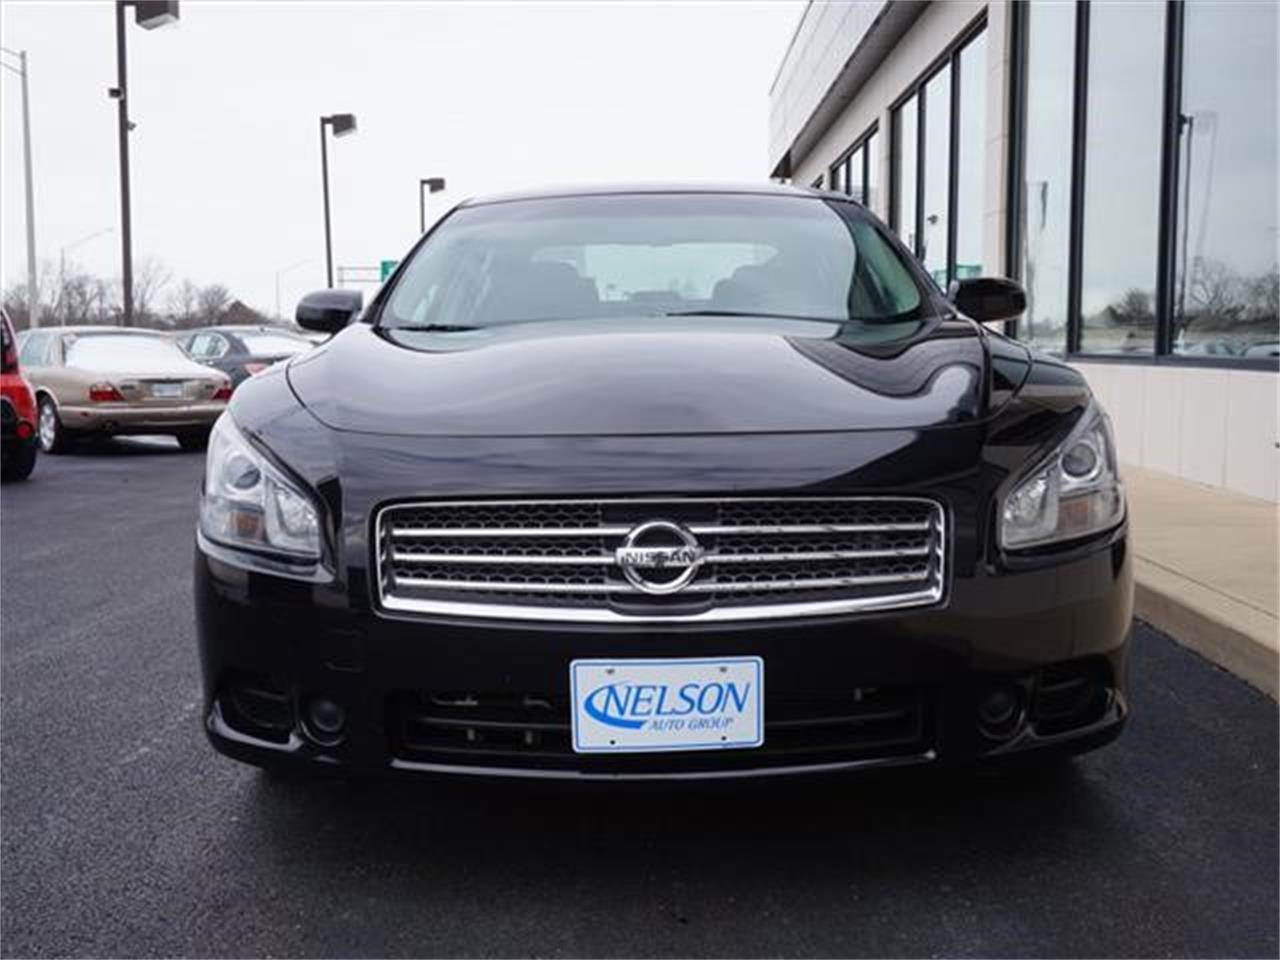 Large Picture of '10 Nissan Maxima located in Marysville Ohio - $9,999.00 Offered by Nelson Automotive, Ltd. - KHAD